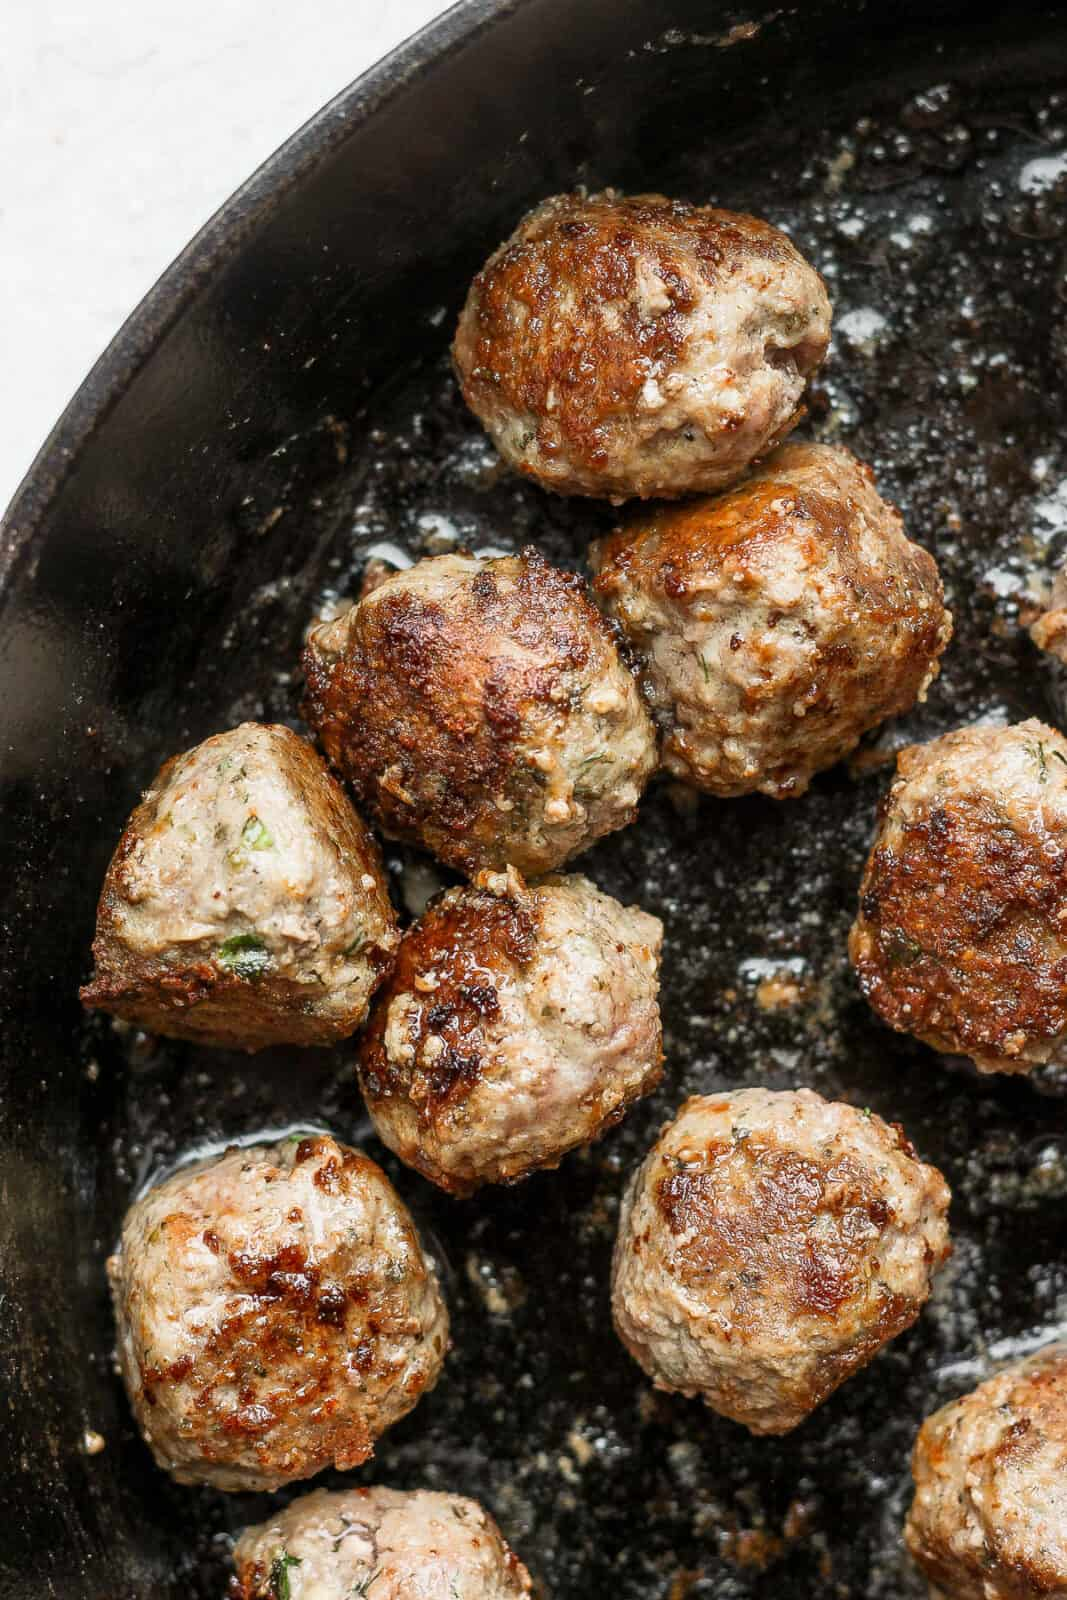 Lamb meatballs fried in a cast iron pan.